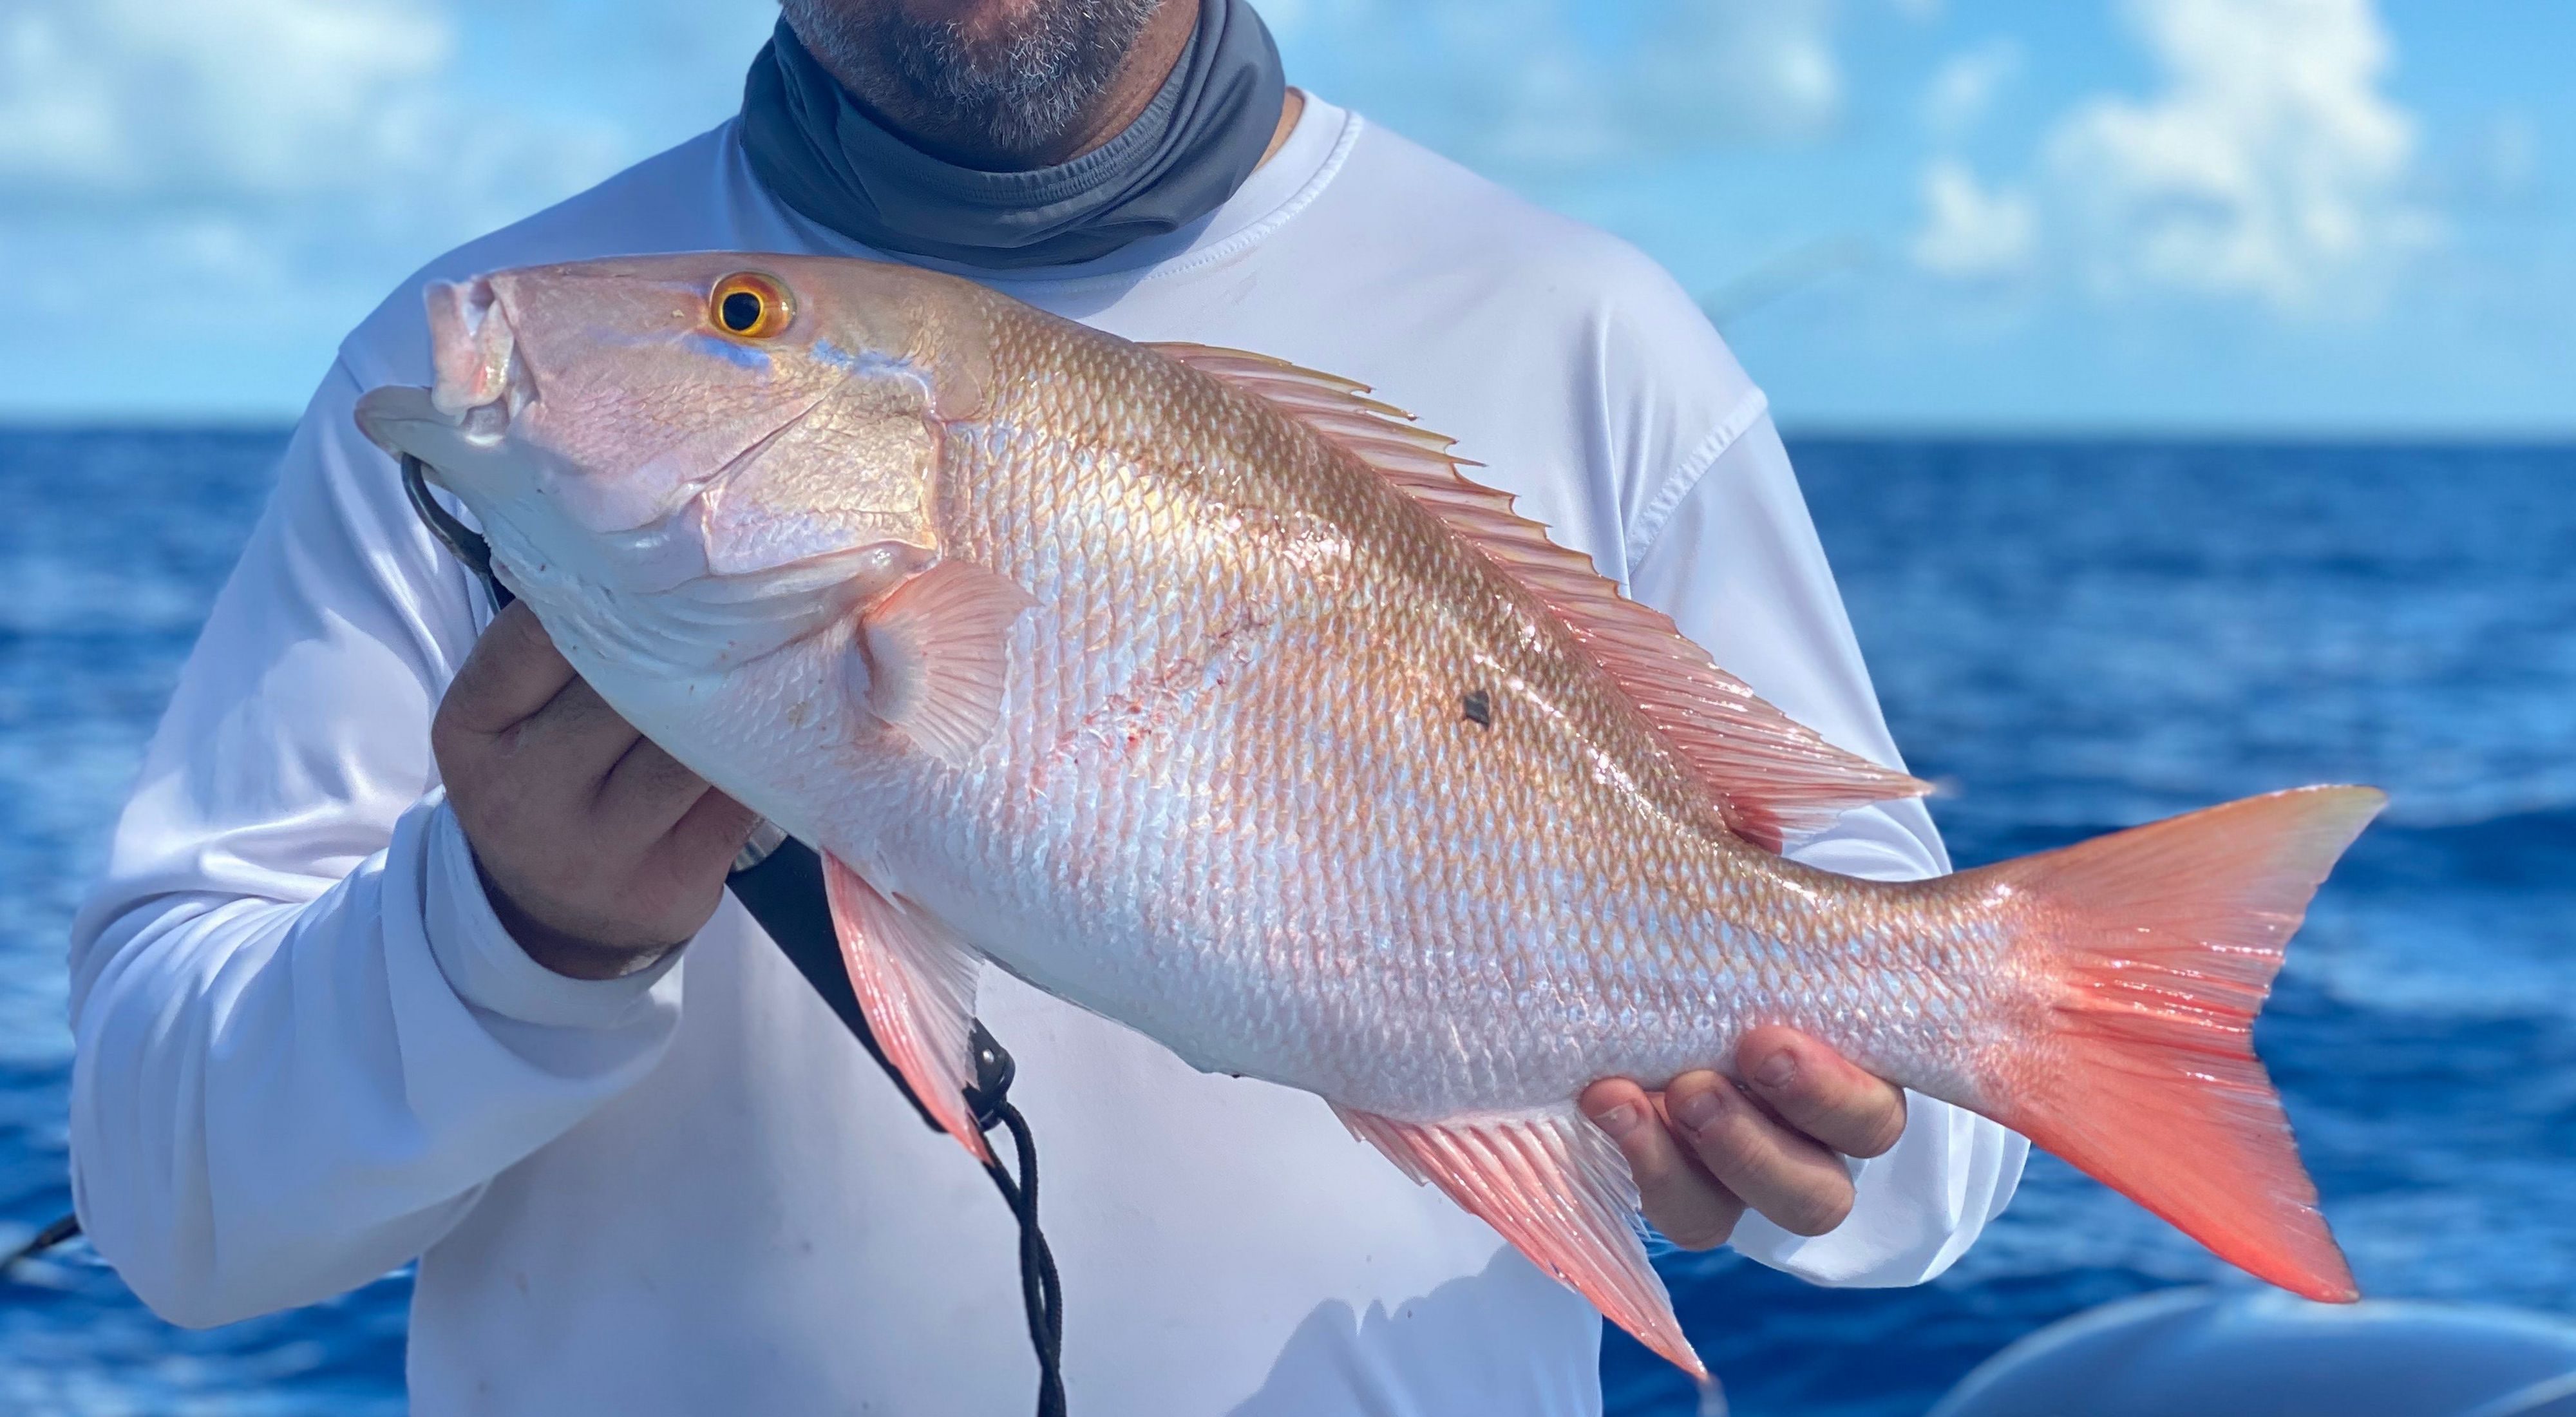 Fisherman on a boat holding up a pink and white mutton snapper fish.